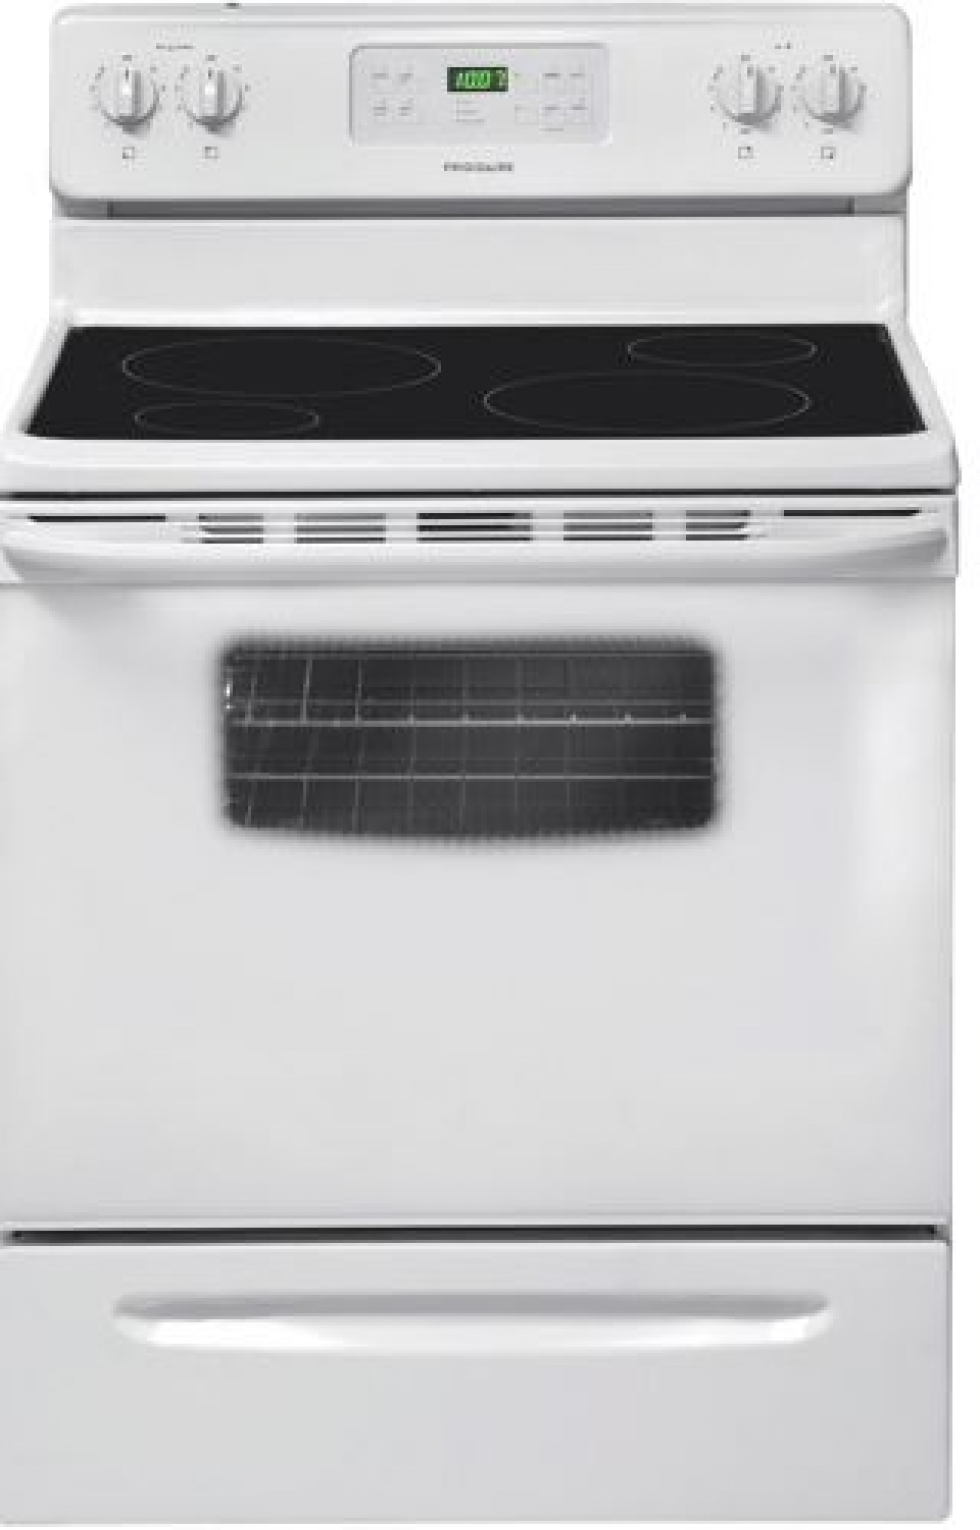 Fridgidaire Self Clean Smooth Top Electric Range White